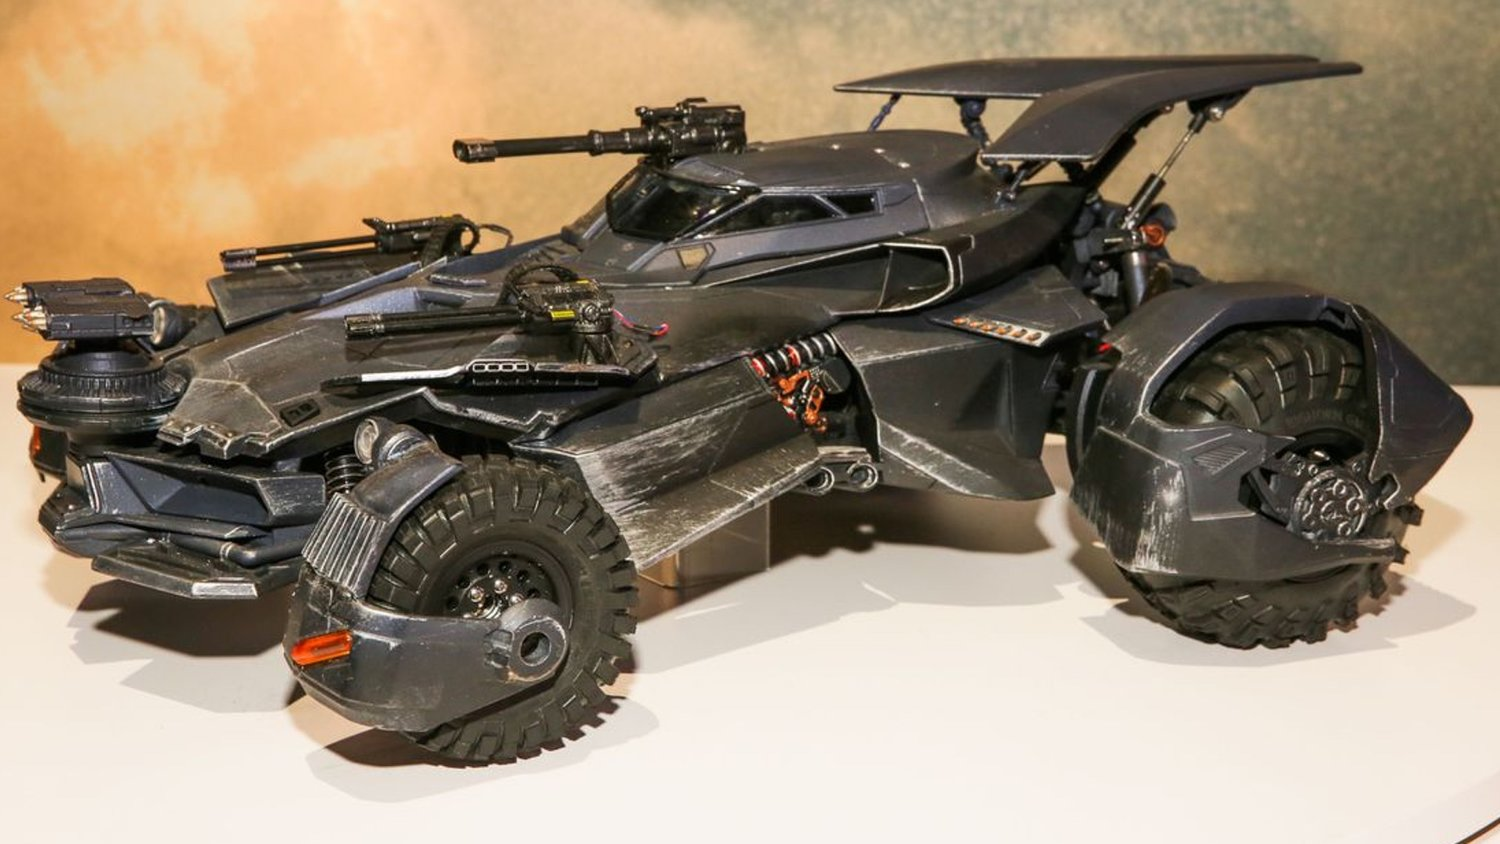 Check Out a Radical RC Batmobile From JUSTICE LEAGUE Along With Some Premium Statues